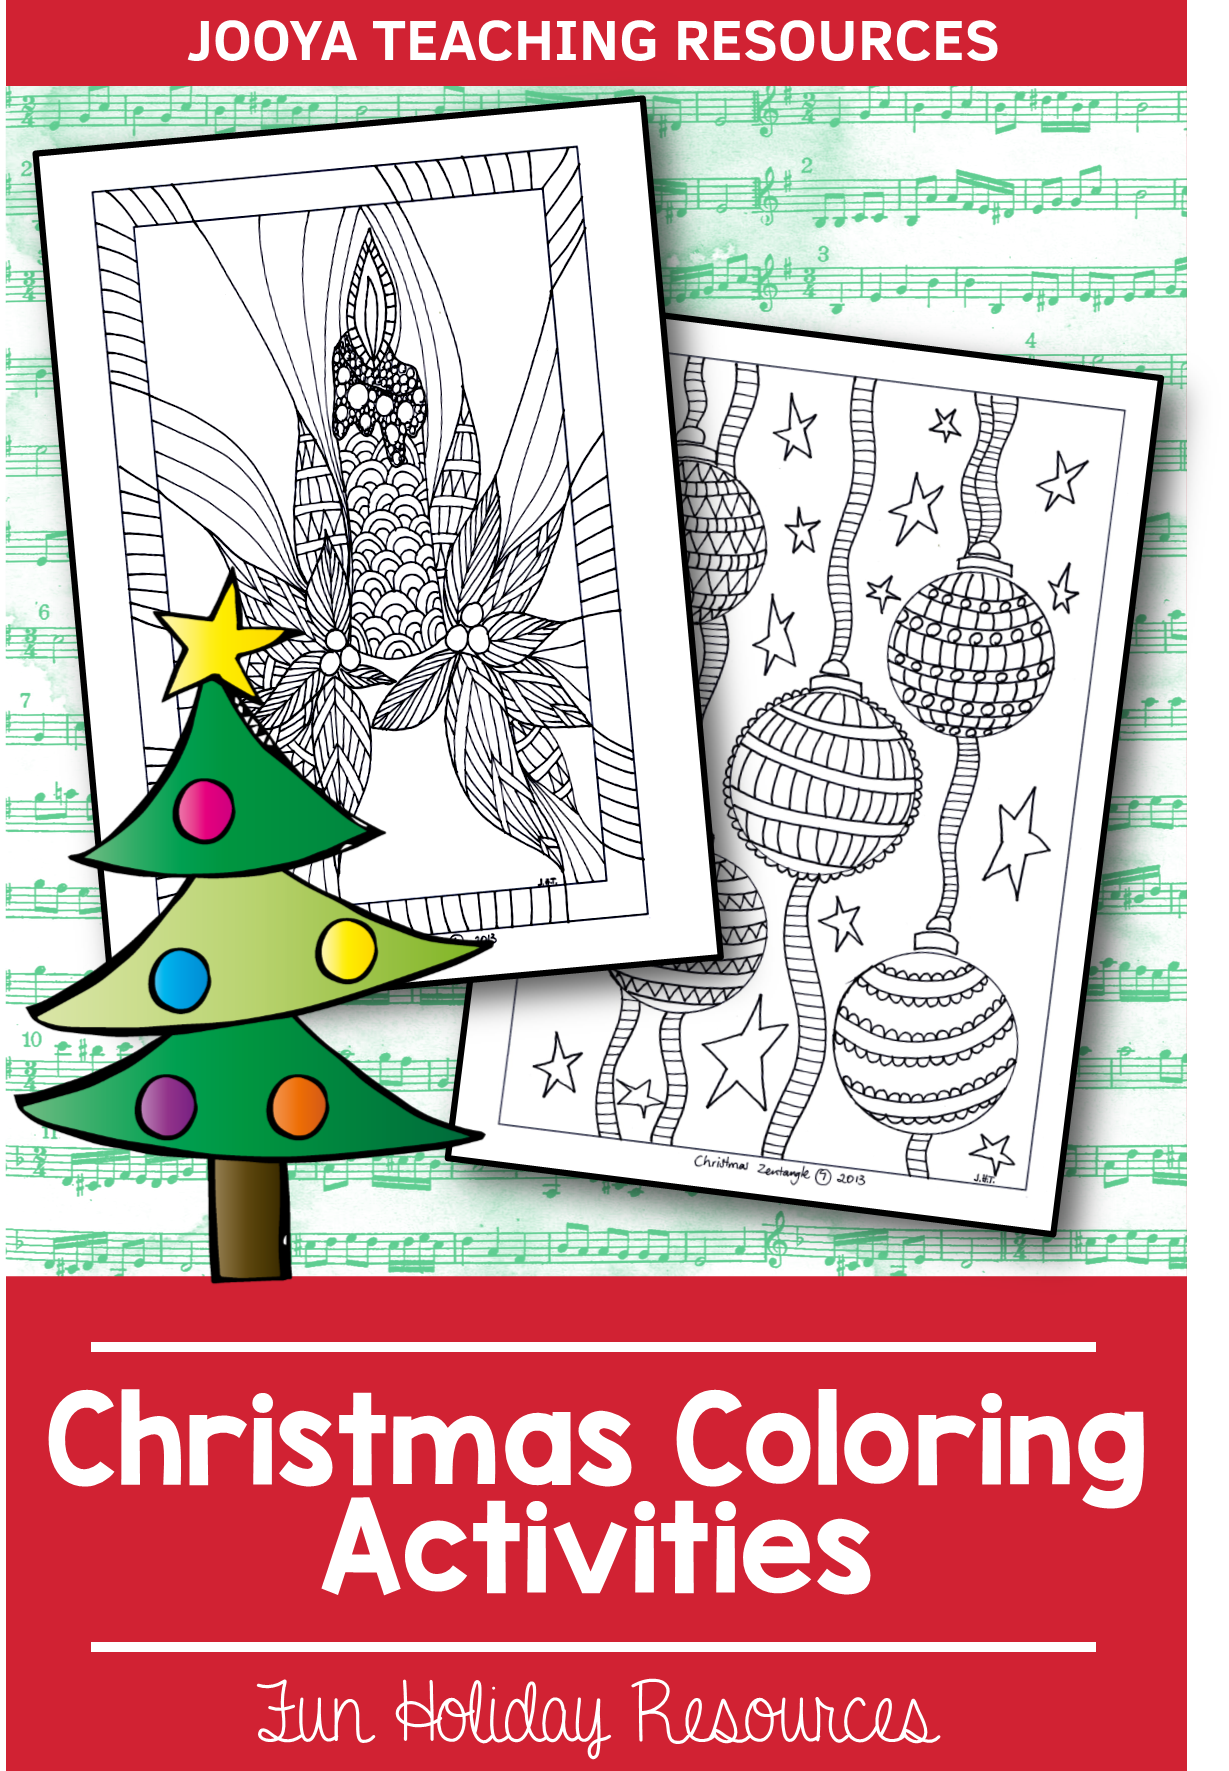 Your Middle School Students Will Love These Christmas